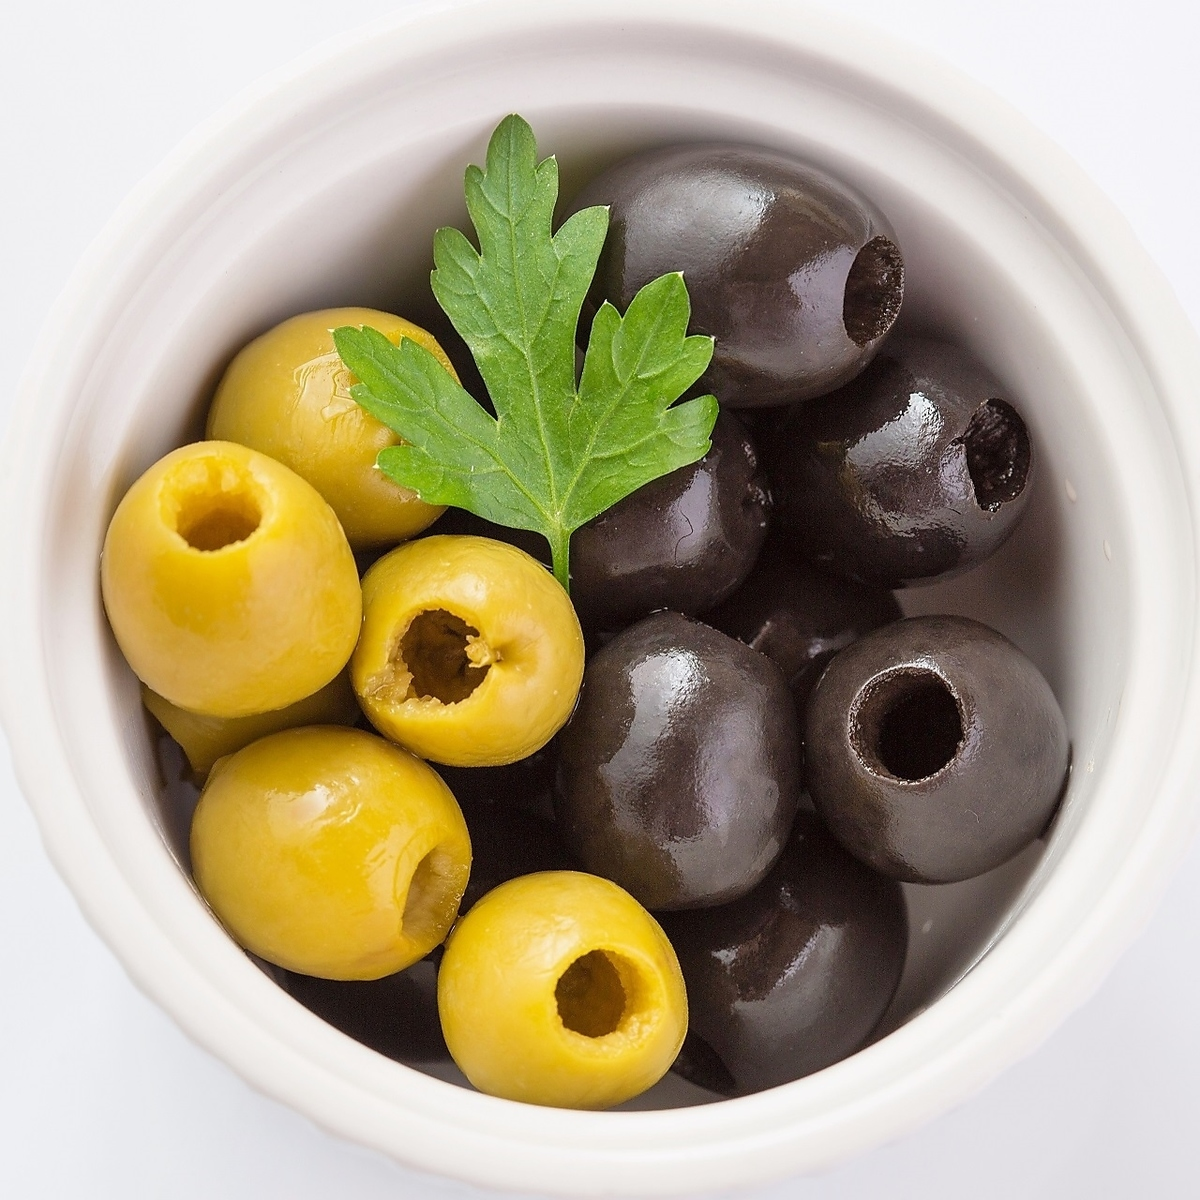 Assorted olives